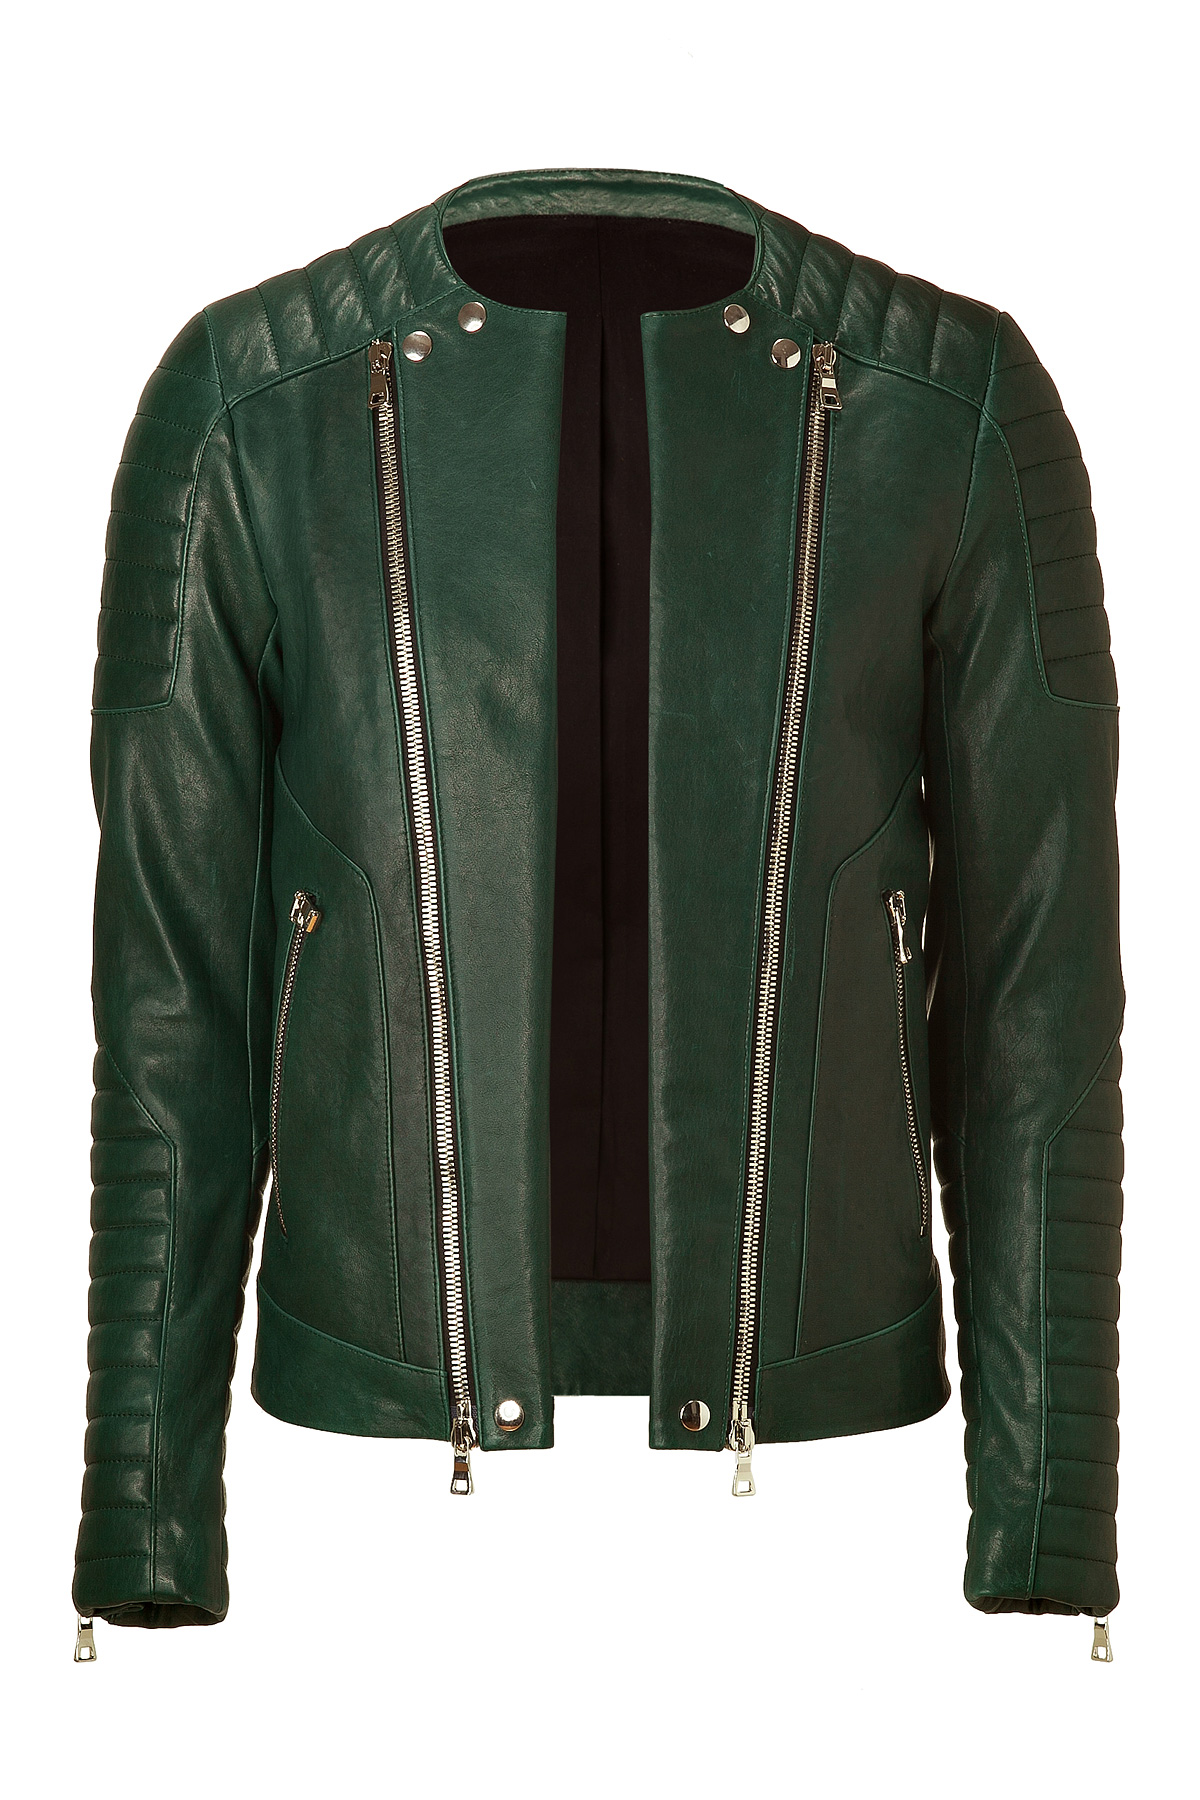 Balmain Shirts Men | Balmain Moto Jeans | Balmain Leather Jacket